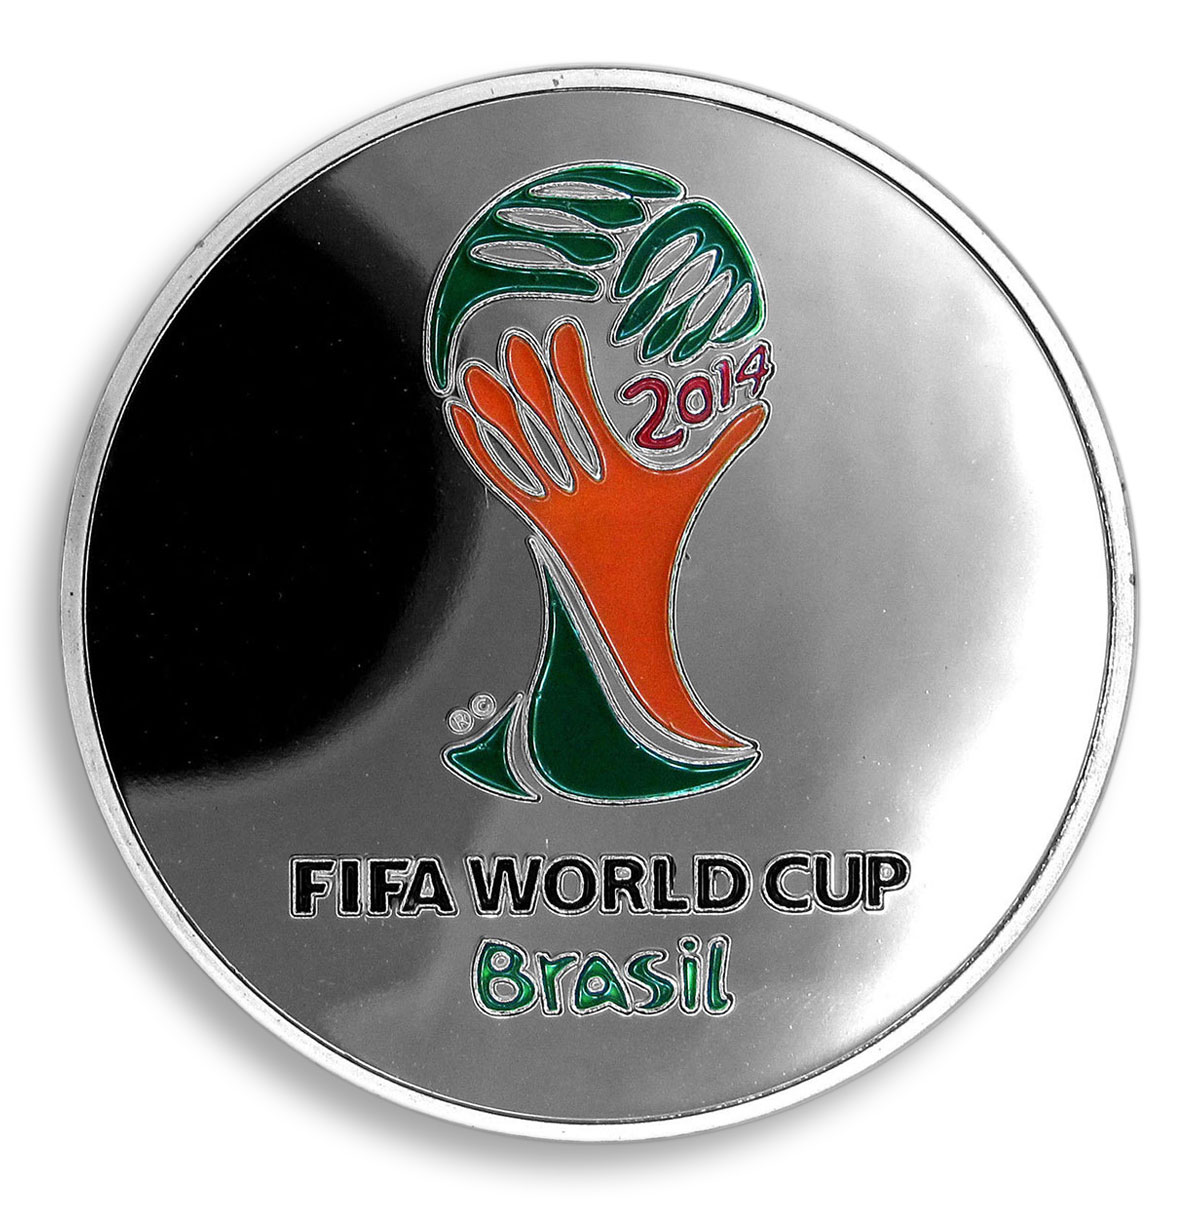 Lionel Messi, Football World Cup 2014, Argentina, FIFA, Silver Plated, Token